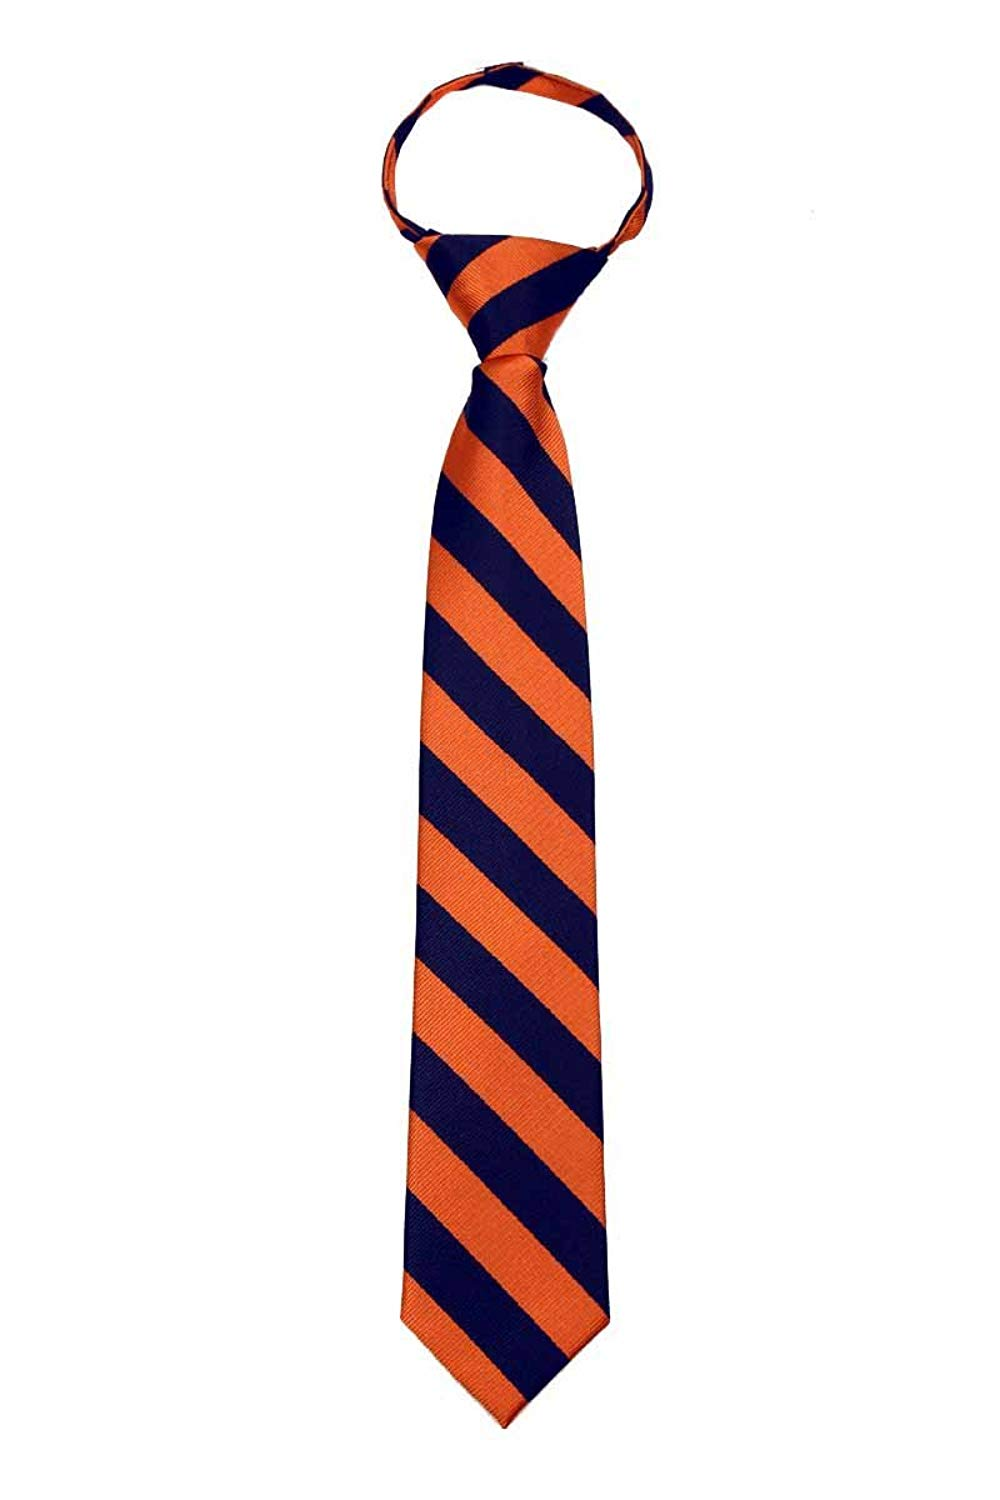 College Stripe Repetitive Boys Youth Zipper Necktie Schools Traditional Zip Ties - Many Colors Available